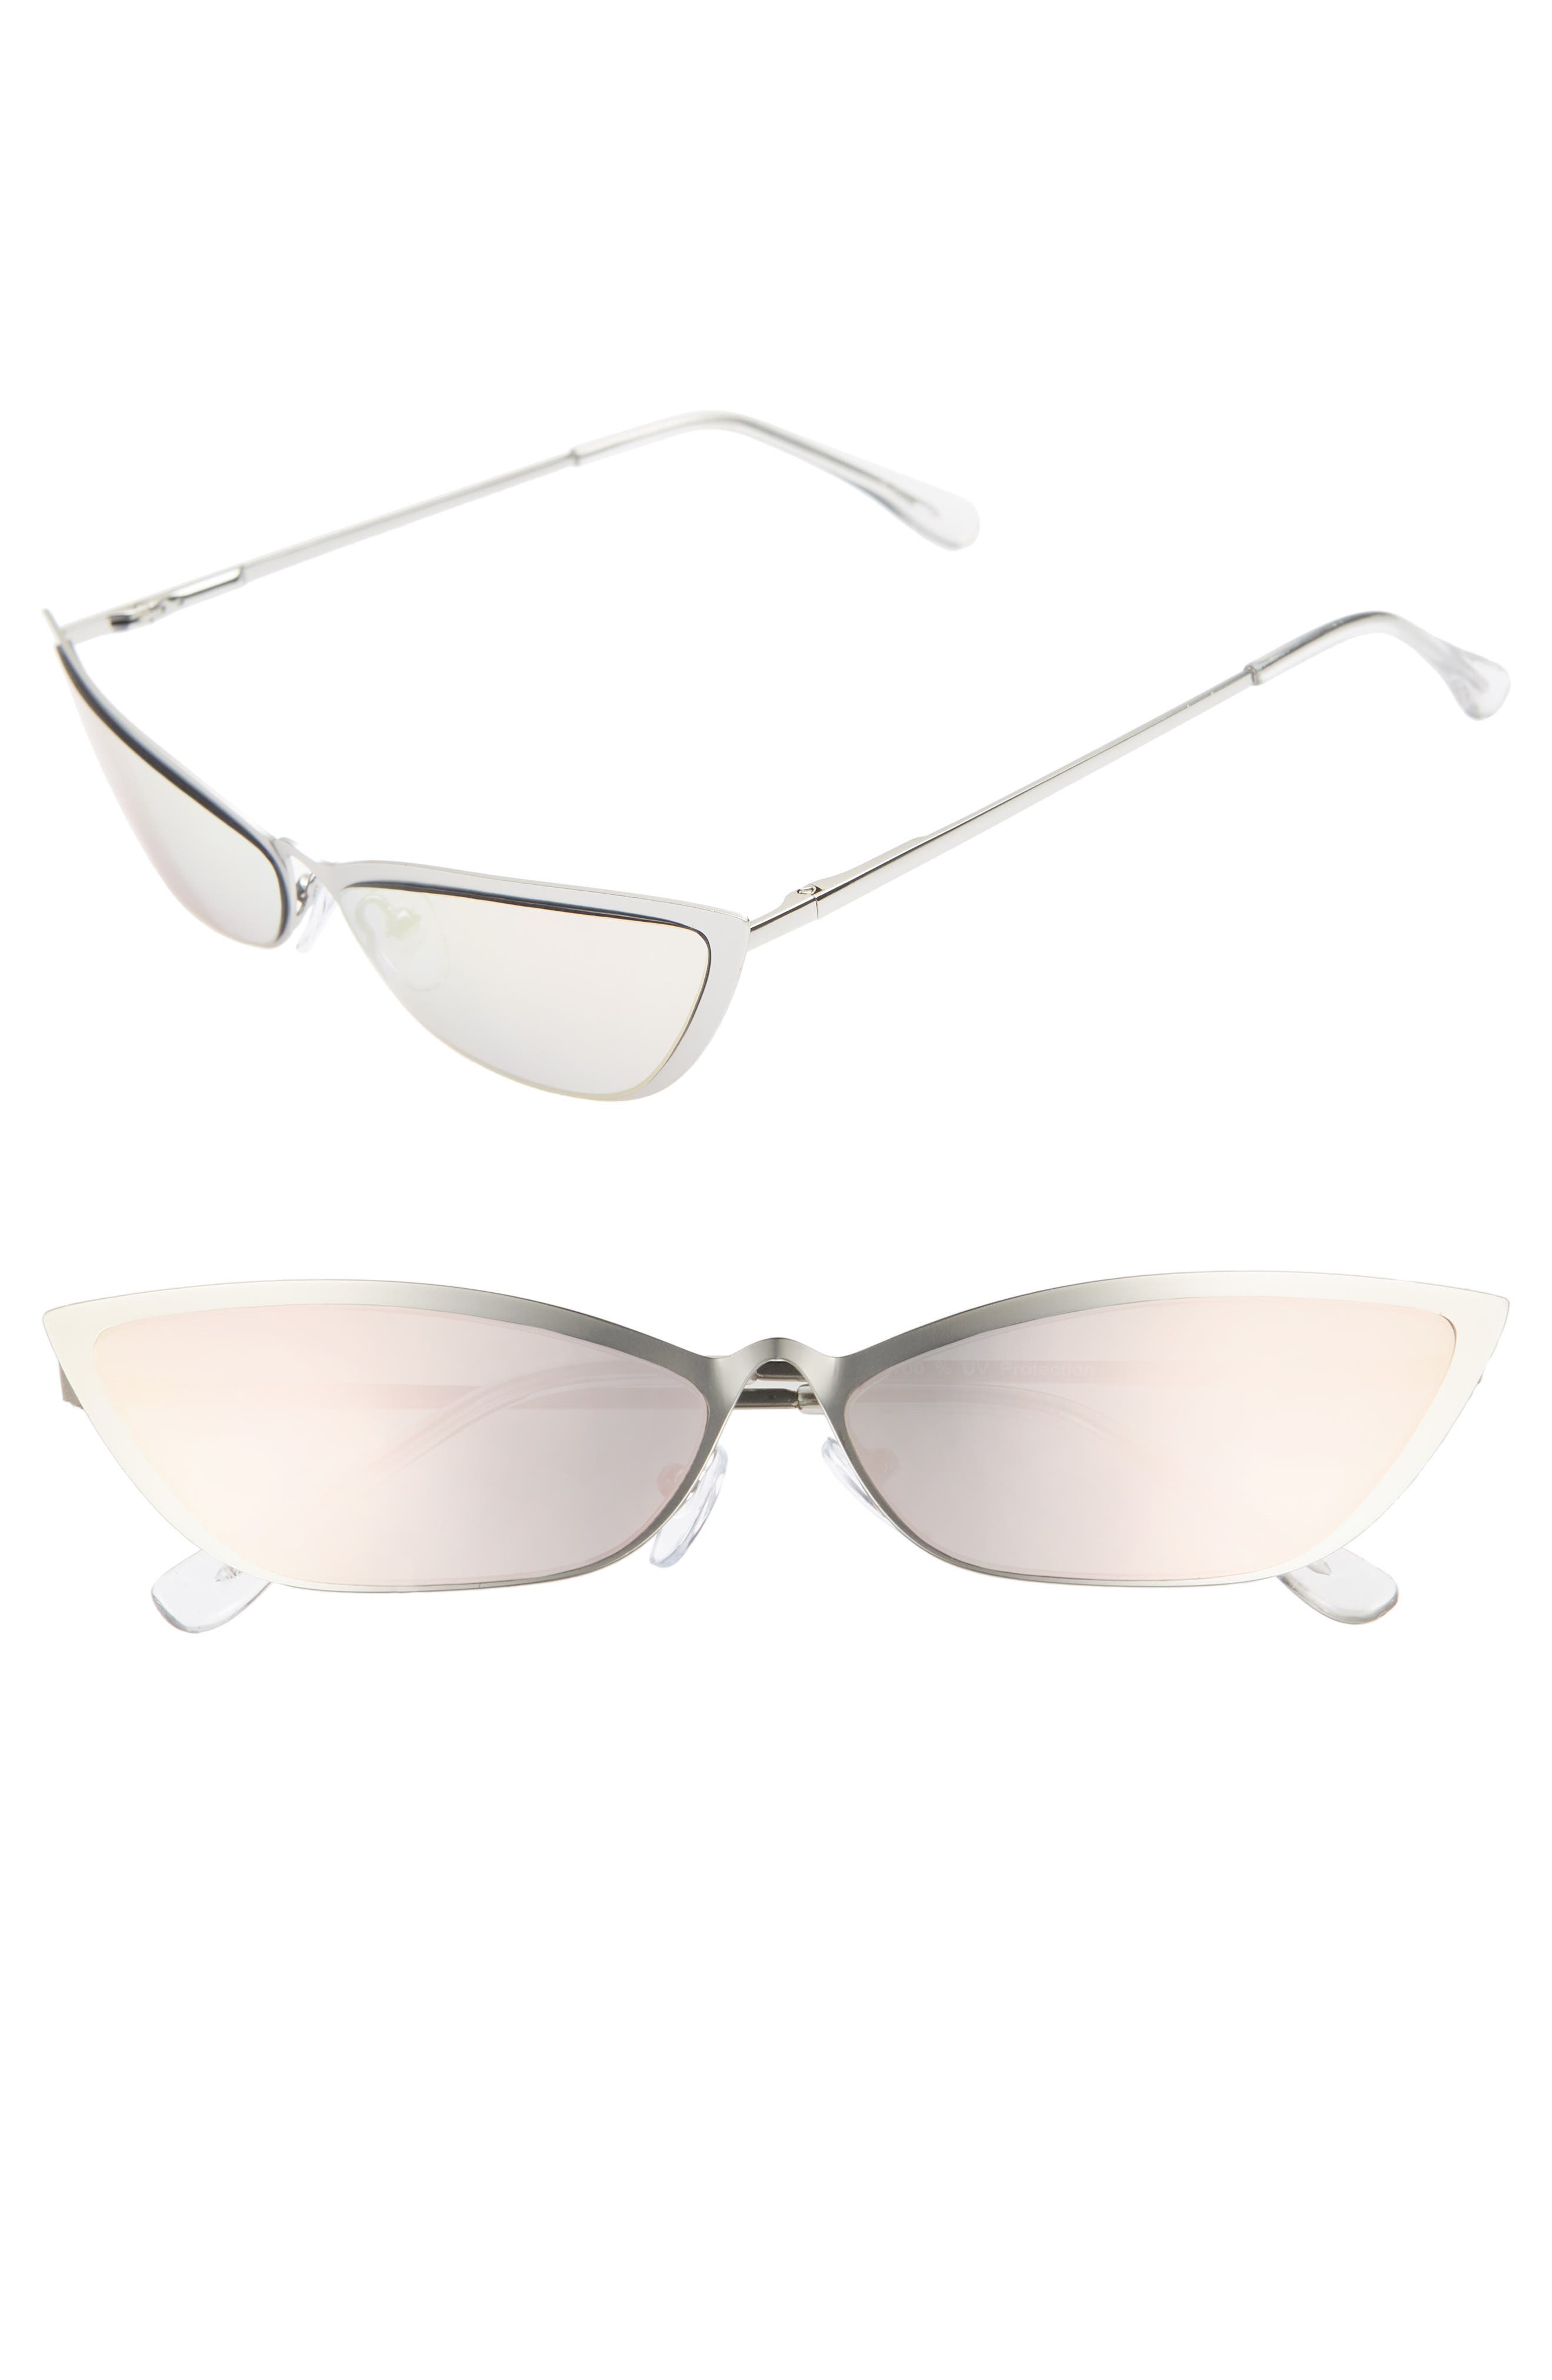 67mm Mirror Cat Eye Sunglasses,                             Main thumbnail 1, color,                             SILVER/ PINK